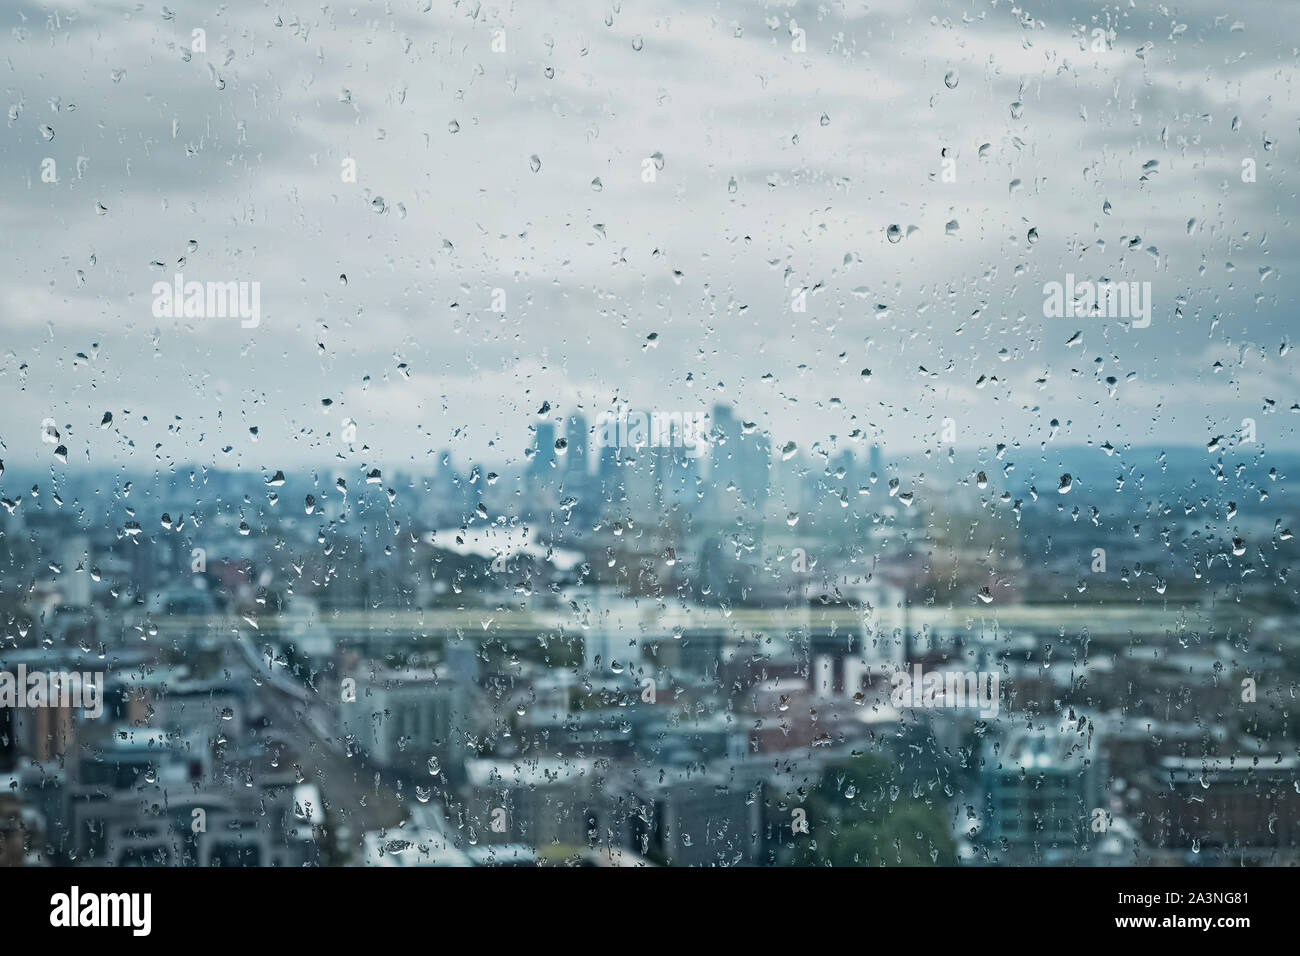 Drops of rain on the glass on the background of London city. Focus on drops. Stock Photo